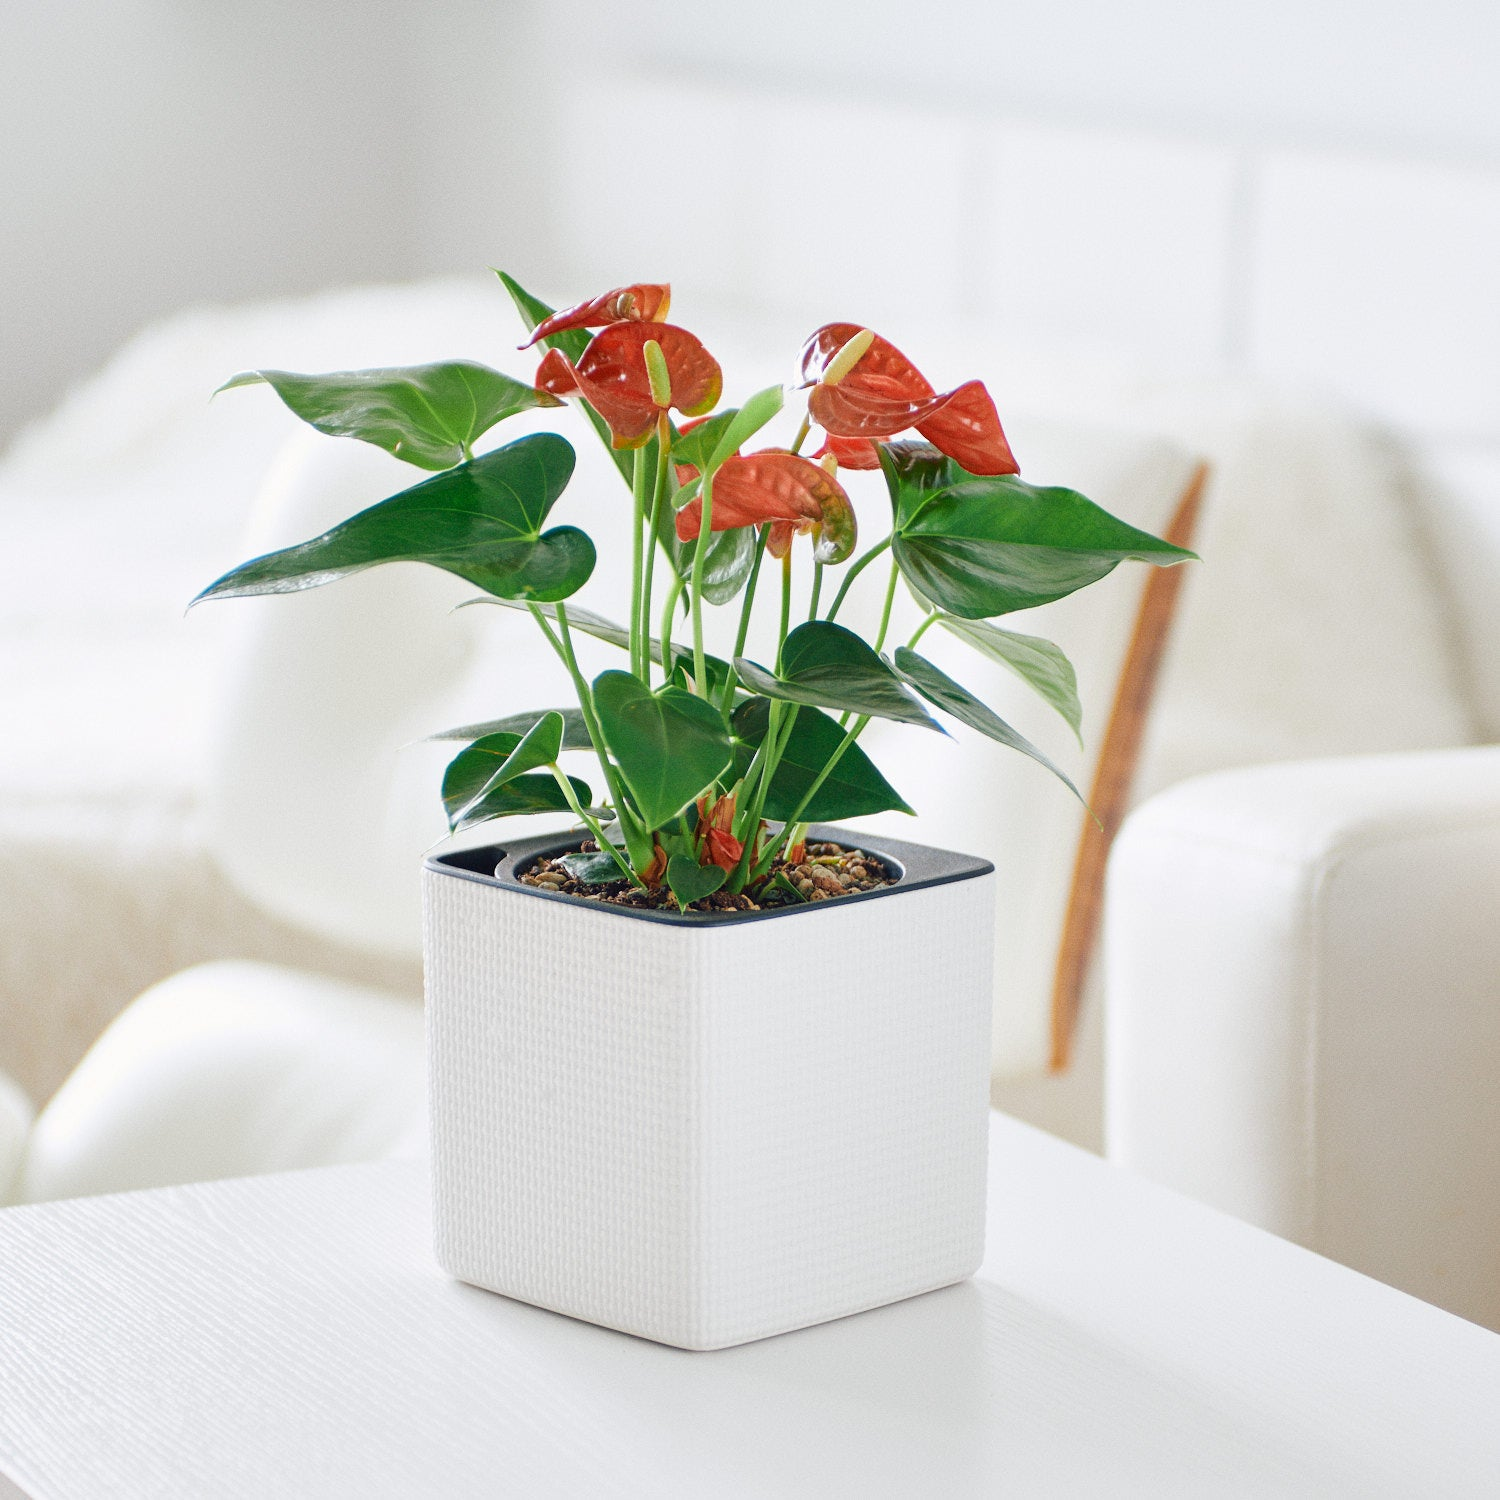 Anthurium Plant In Lechuza Cube 14 White Planter | My City Plants